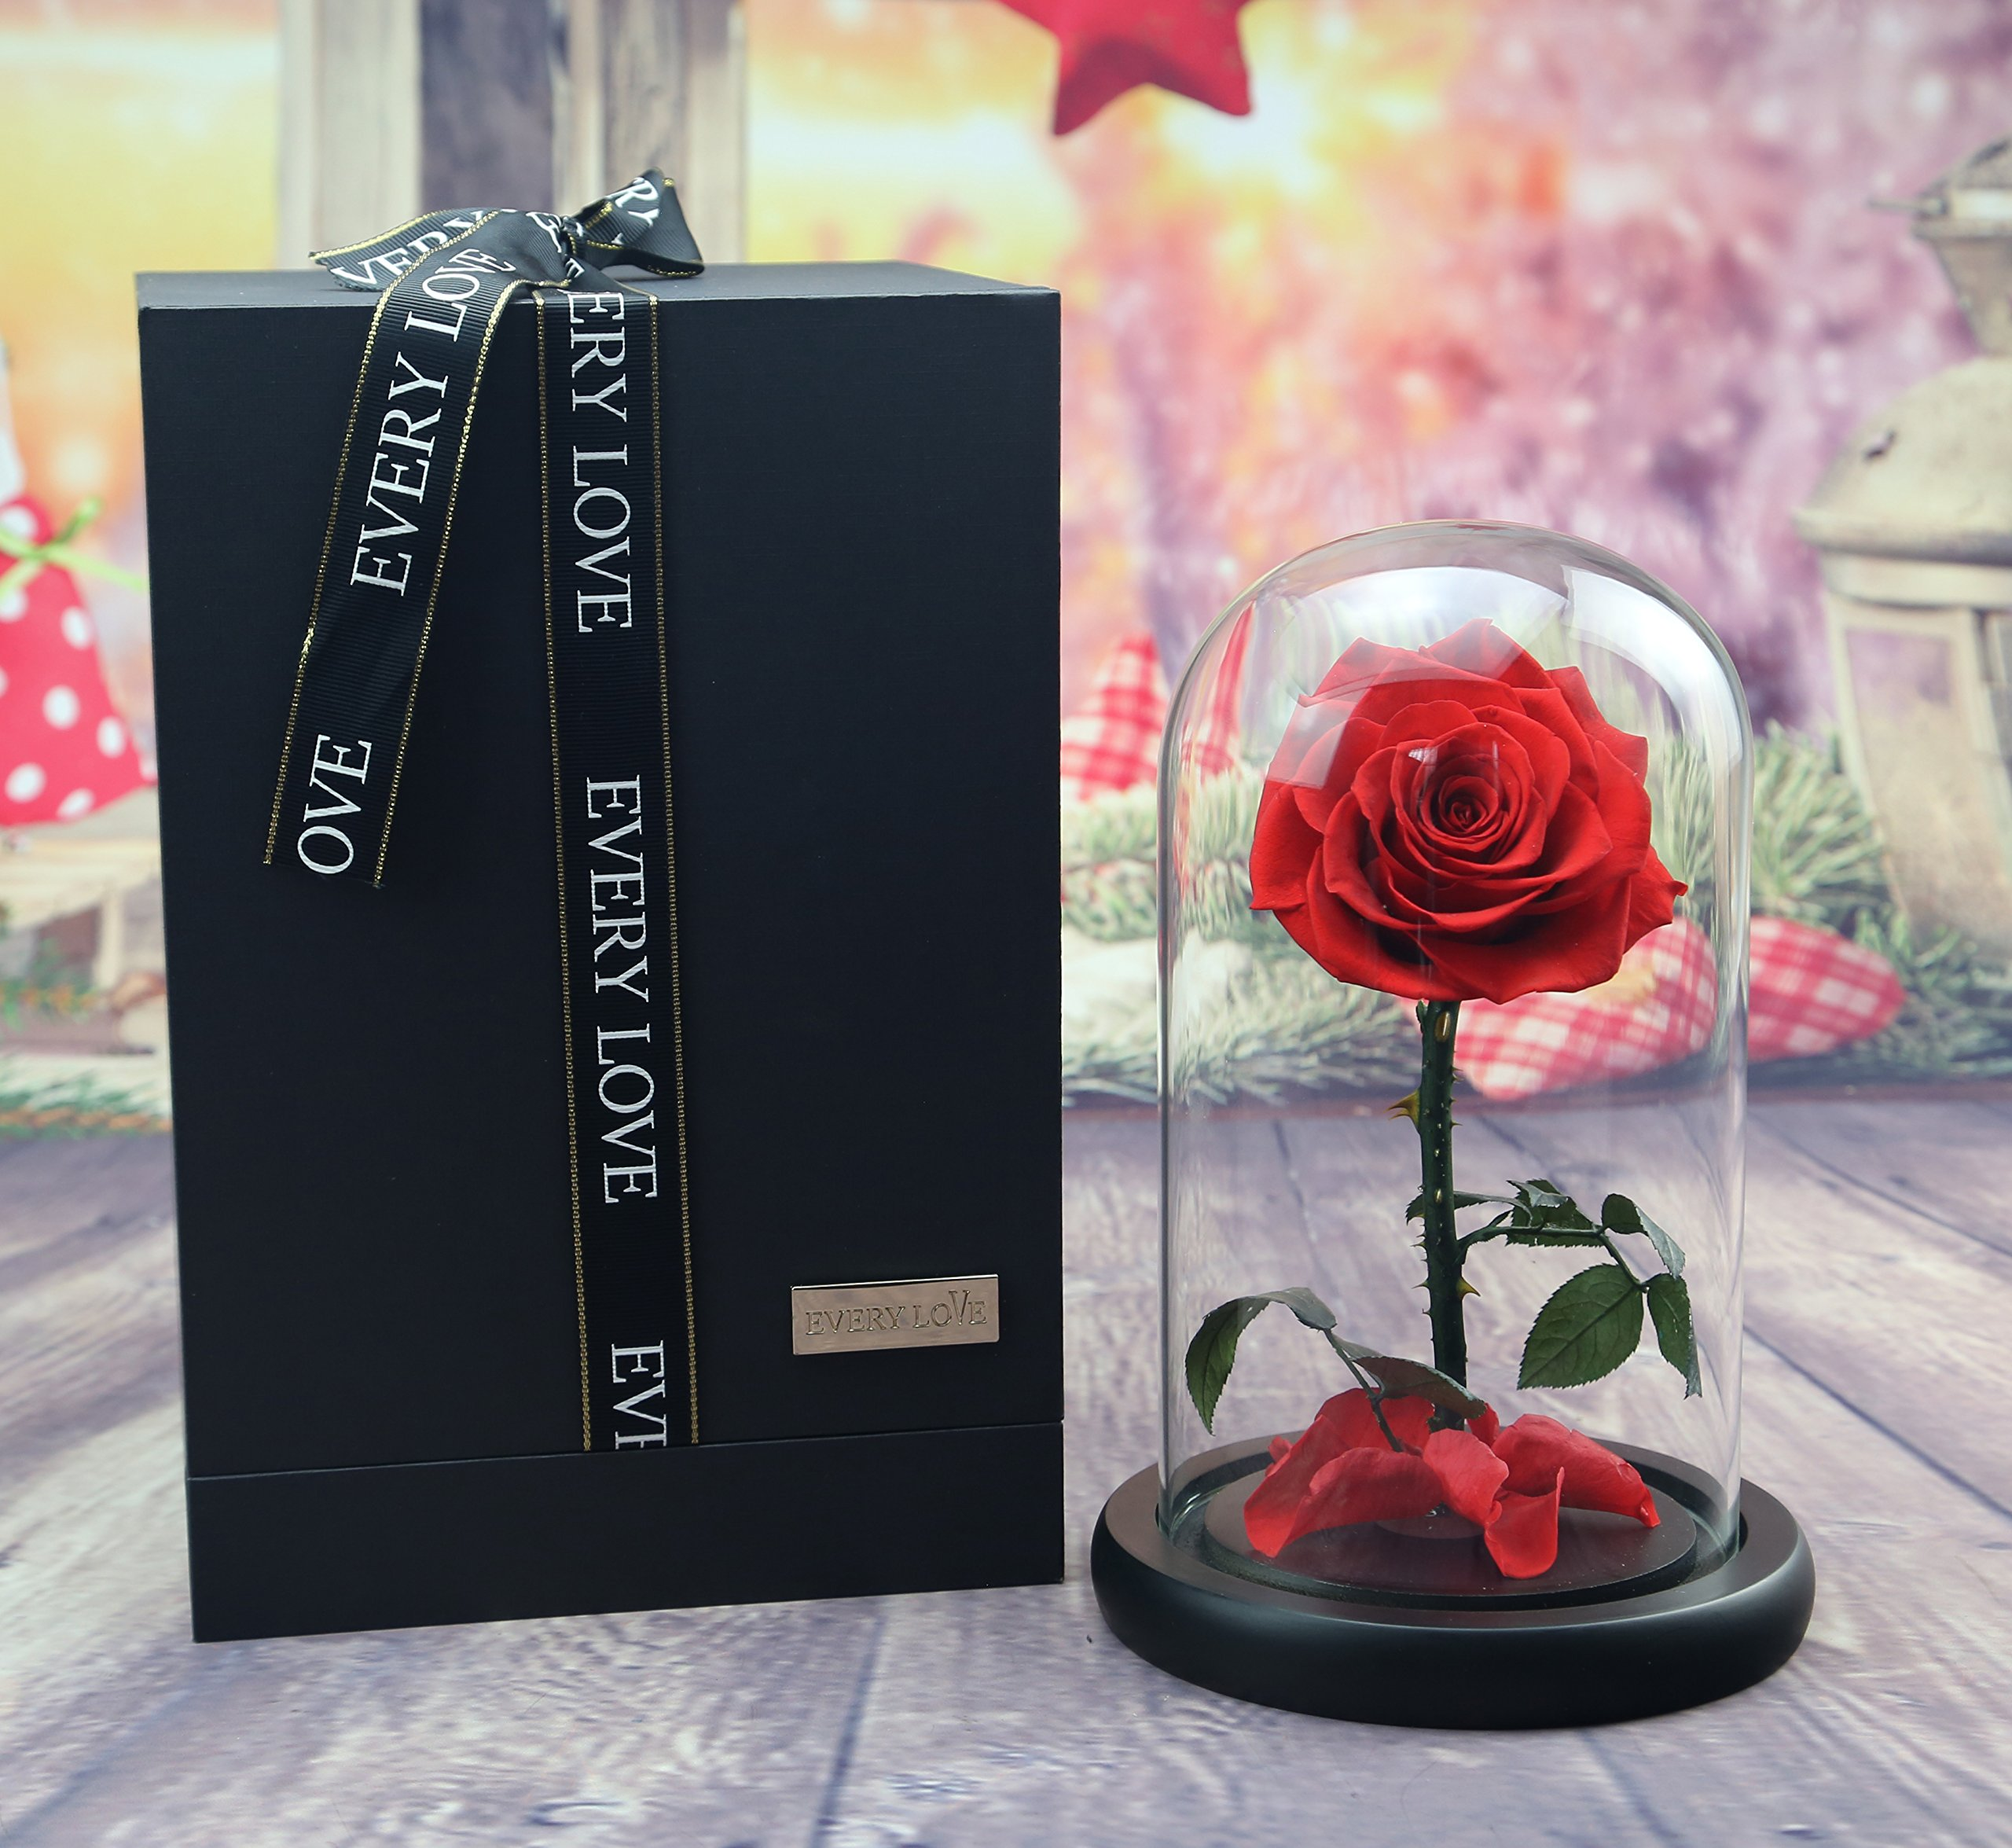 sexyrobot Beauty And The Beast Rose, Preserved Fresh Flower with Fallen Petals in a Glass, with Exquisite Gift Box